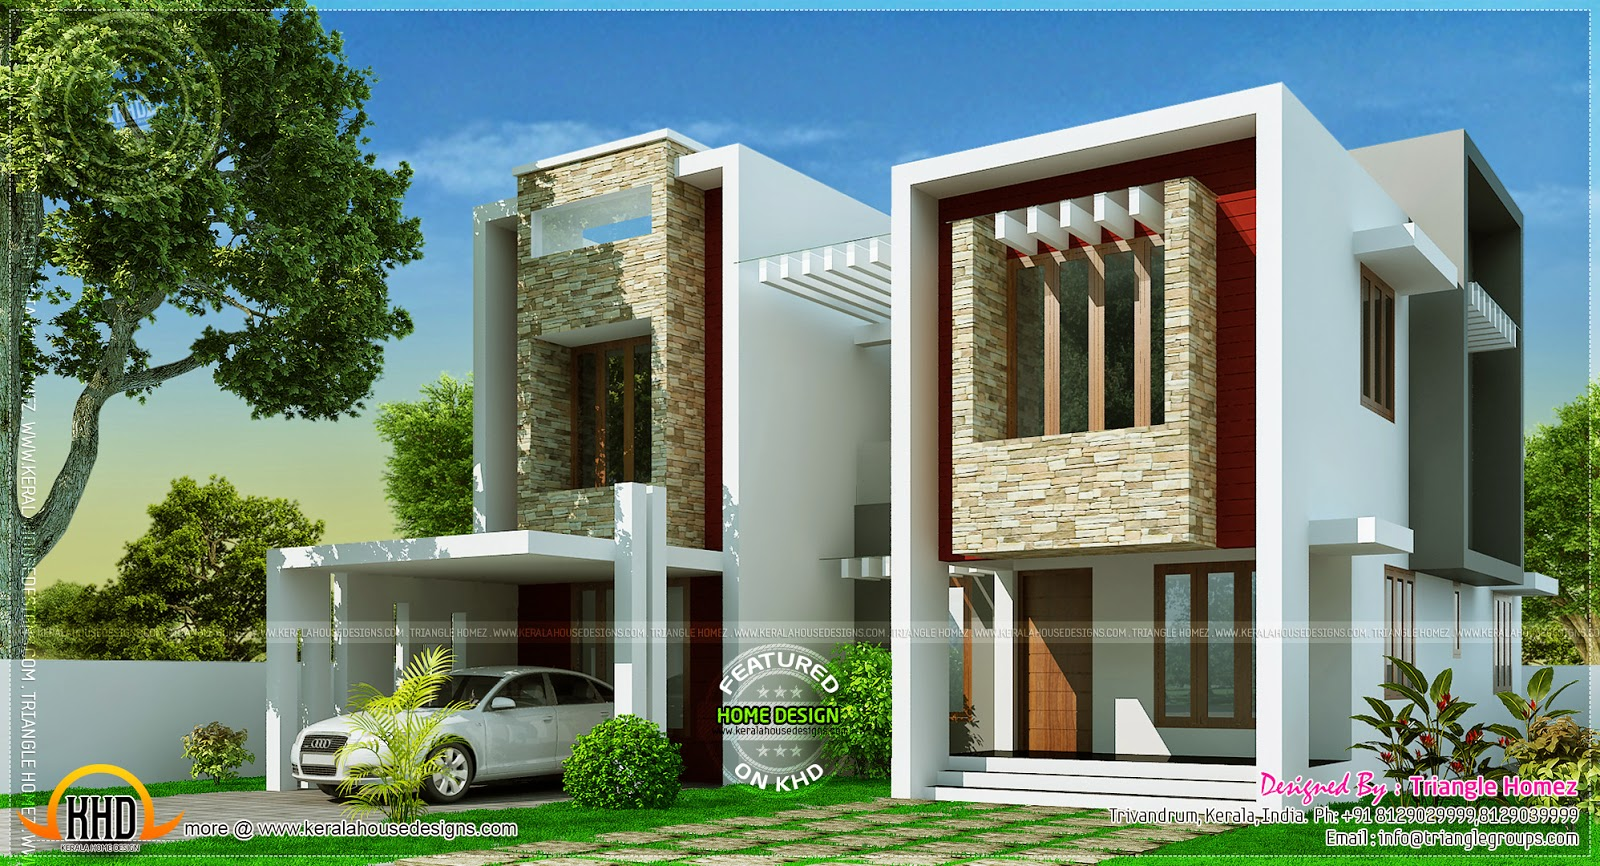 Modern villa design in 2275 square feet kerala home design and floor plans - Contemporary house designs ...